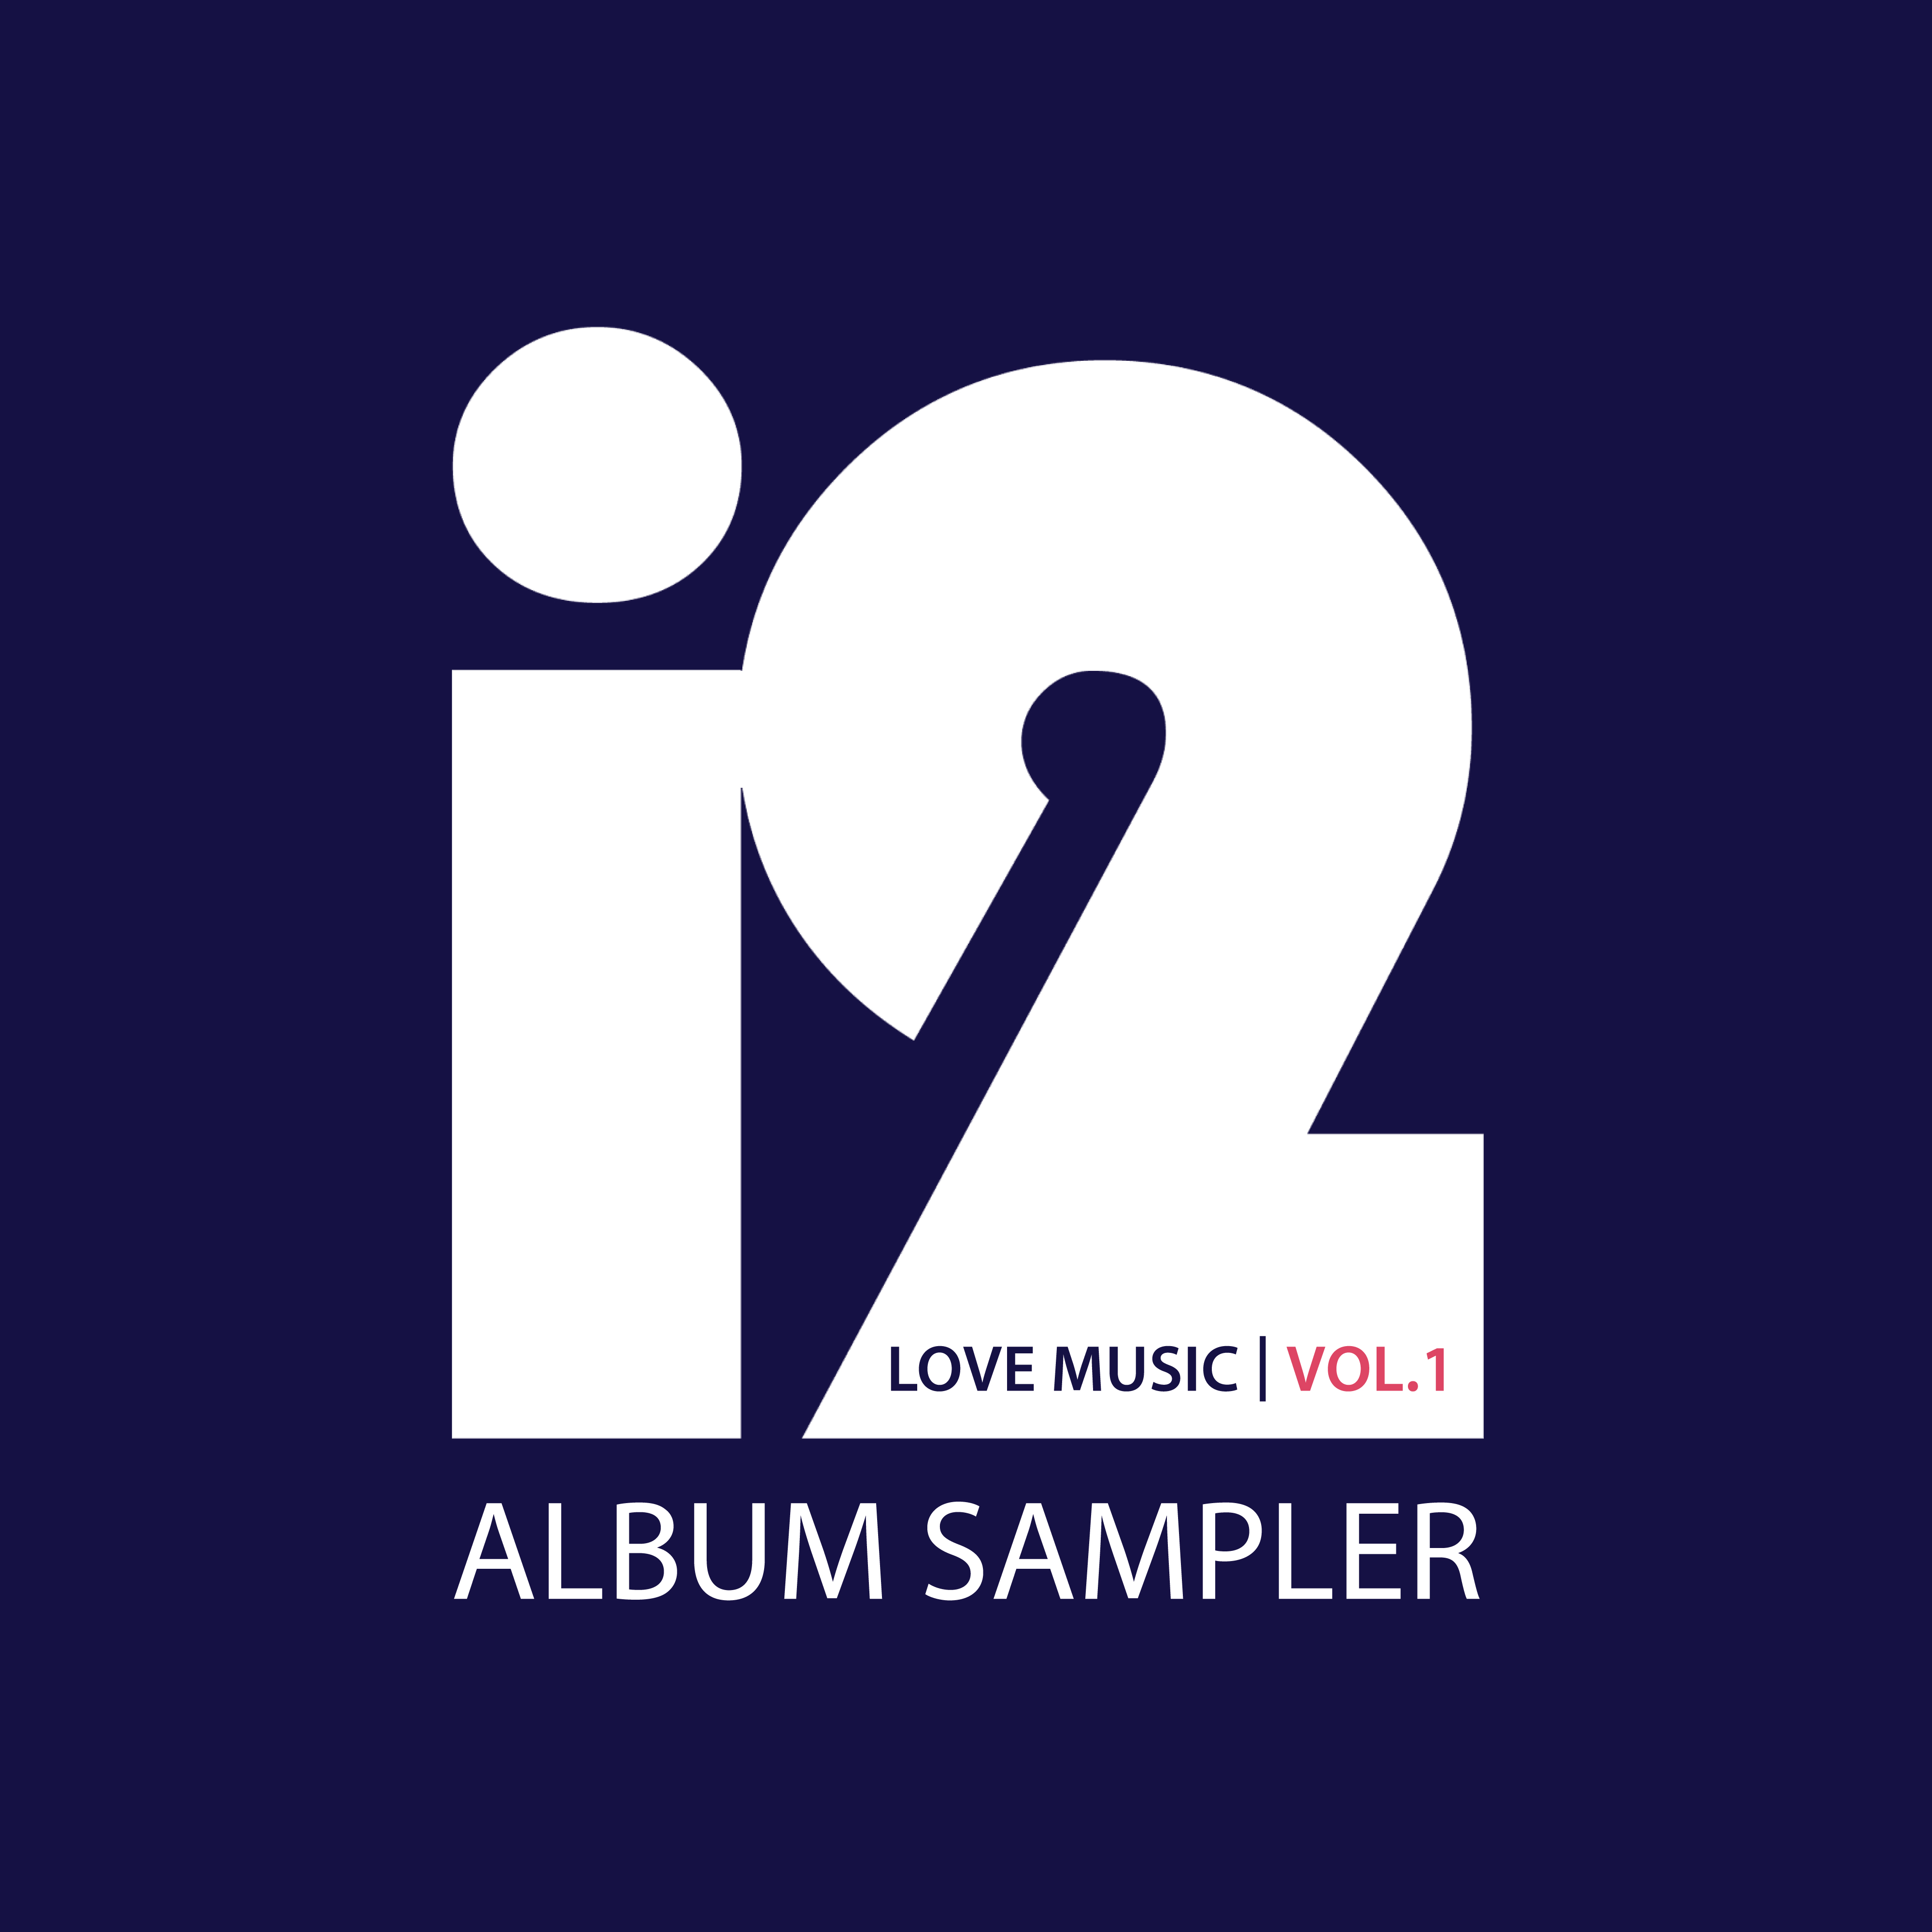 Love music album sampler vol 1 i2 music group official website biocorpaavc